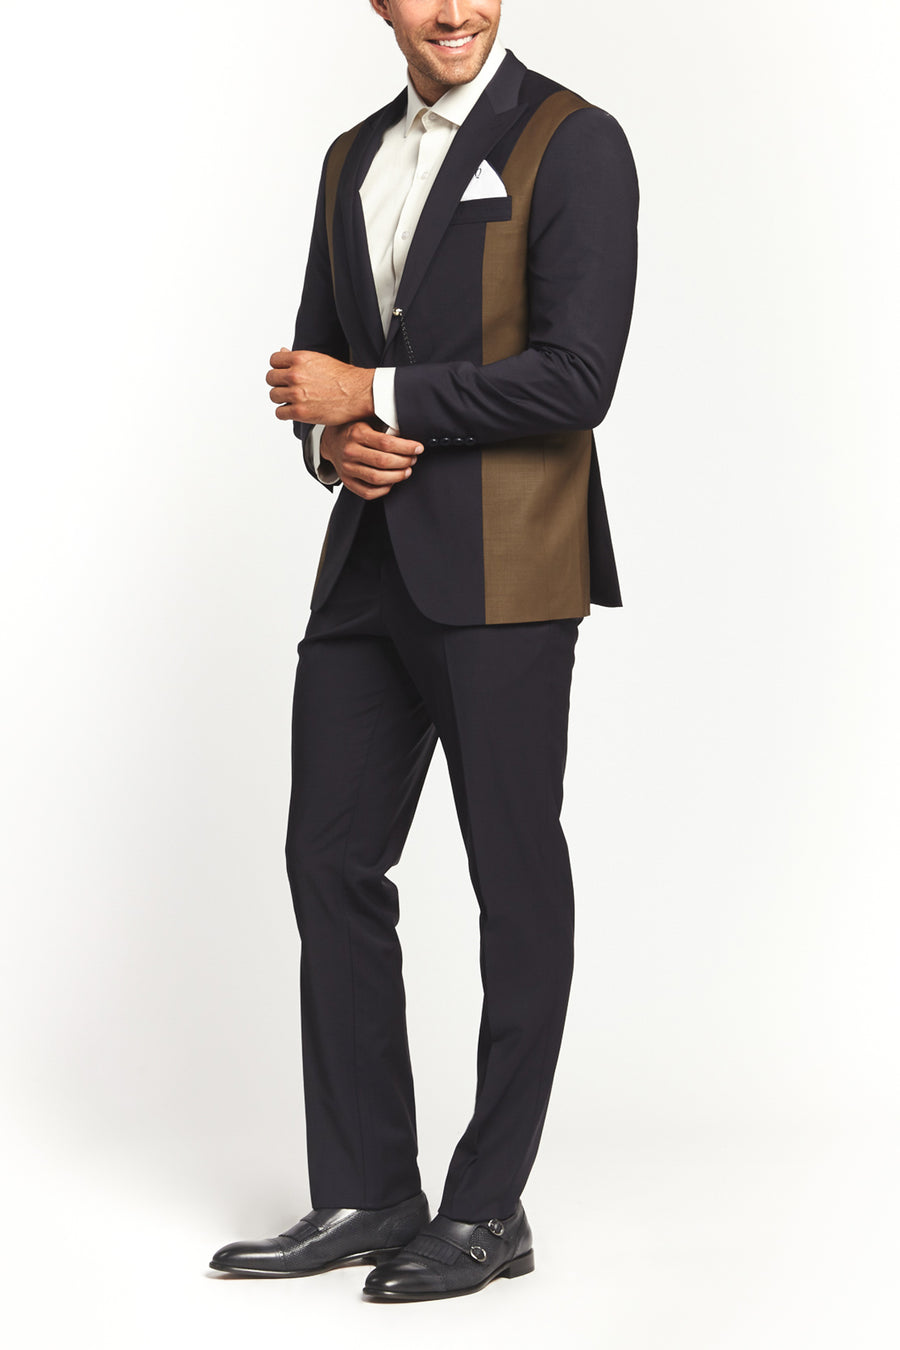 CLASSIC DARK BLUE/BEIGE 2-PIECE SUIT